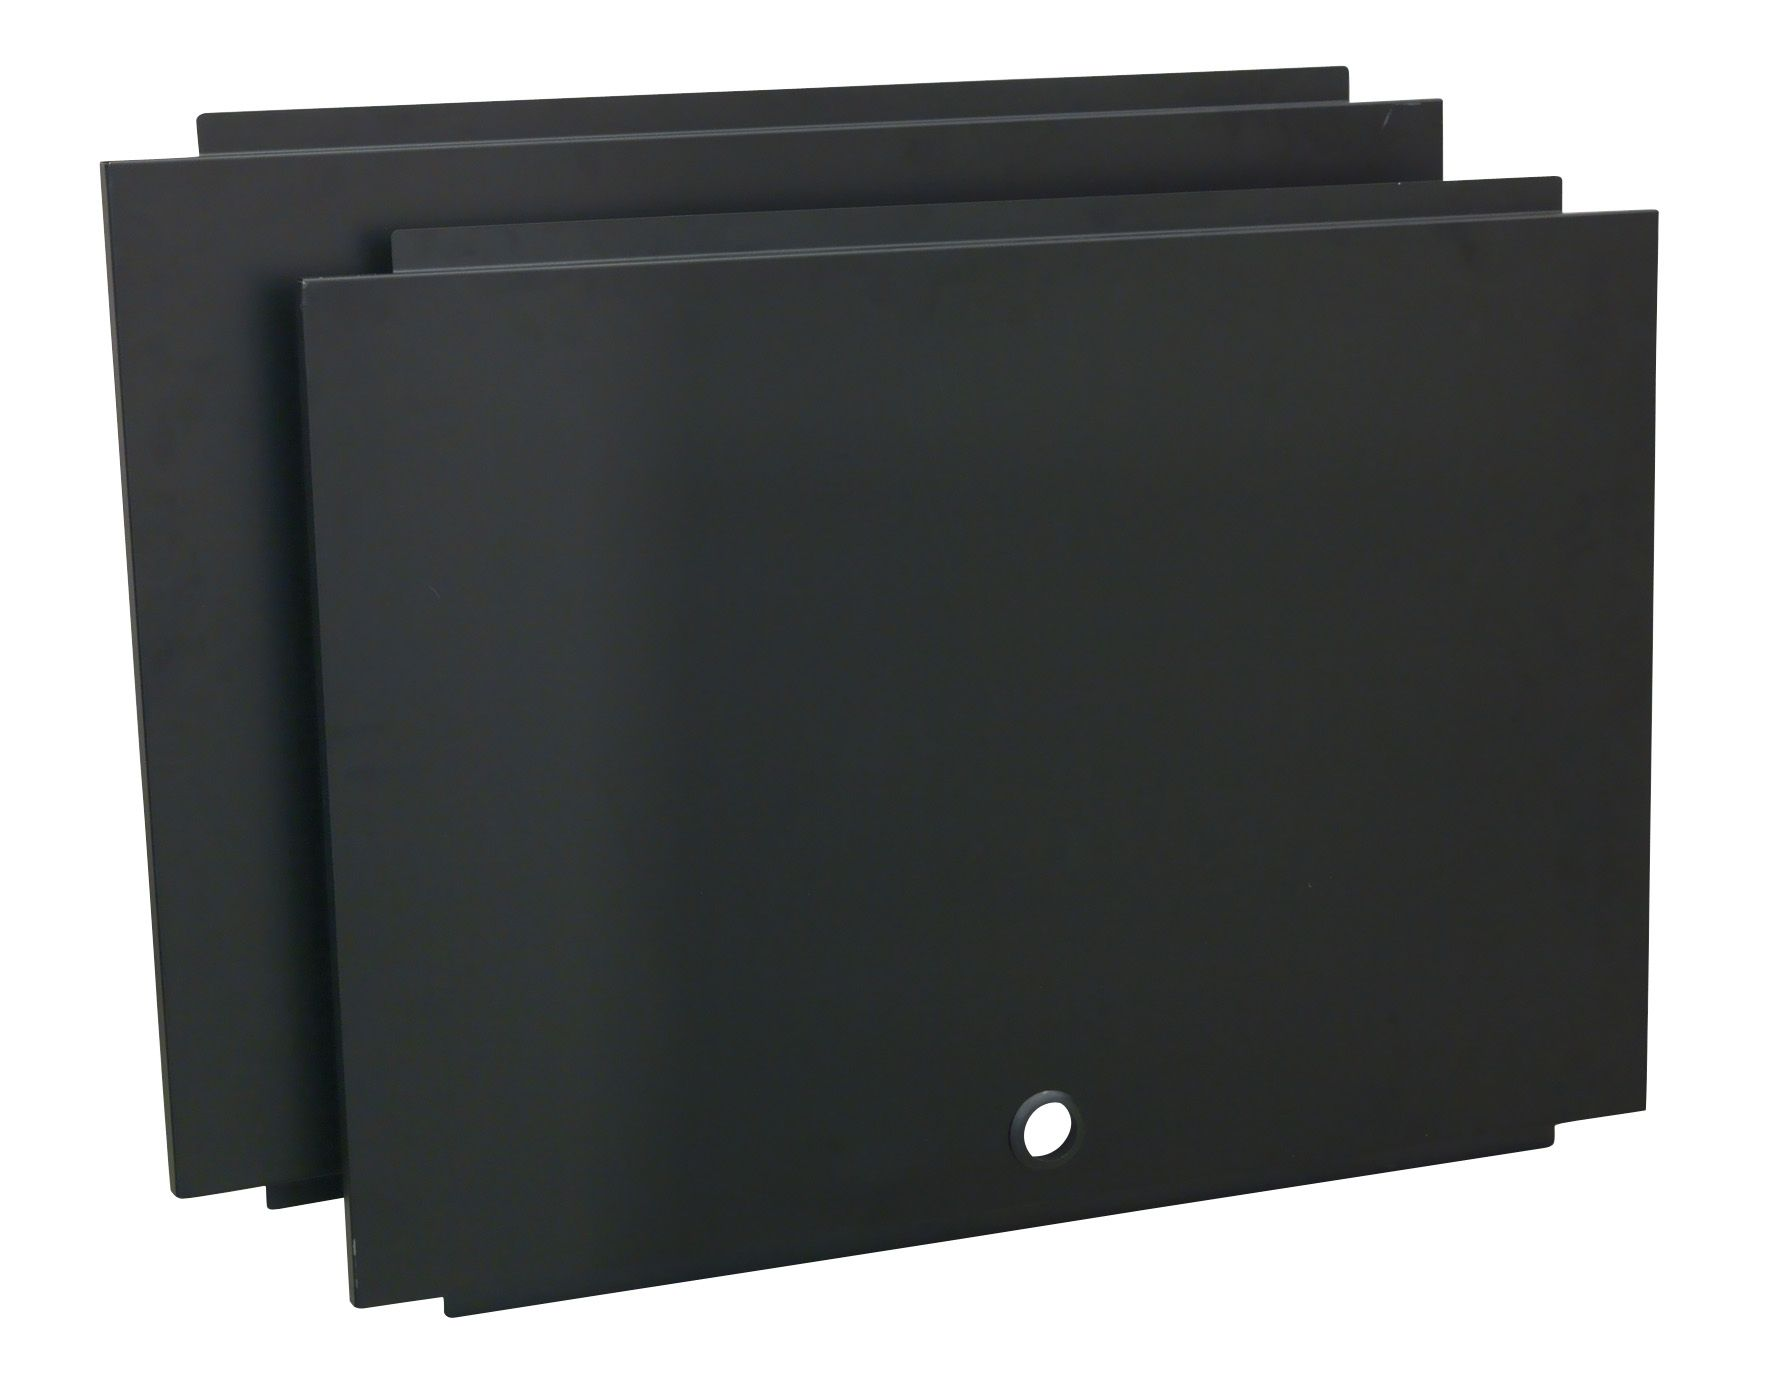 Sealey Premier Back Panel Assembly for Modular Corner Wall Cabinet 930mm